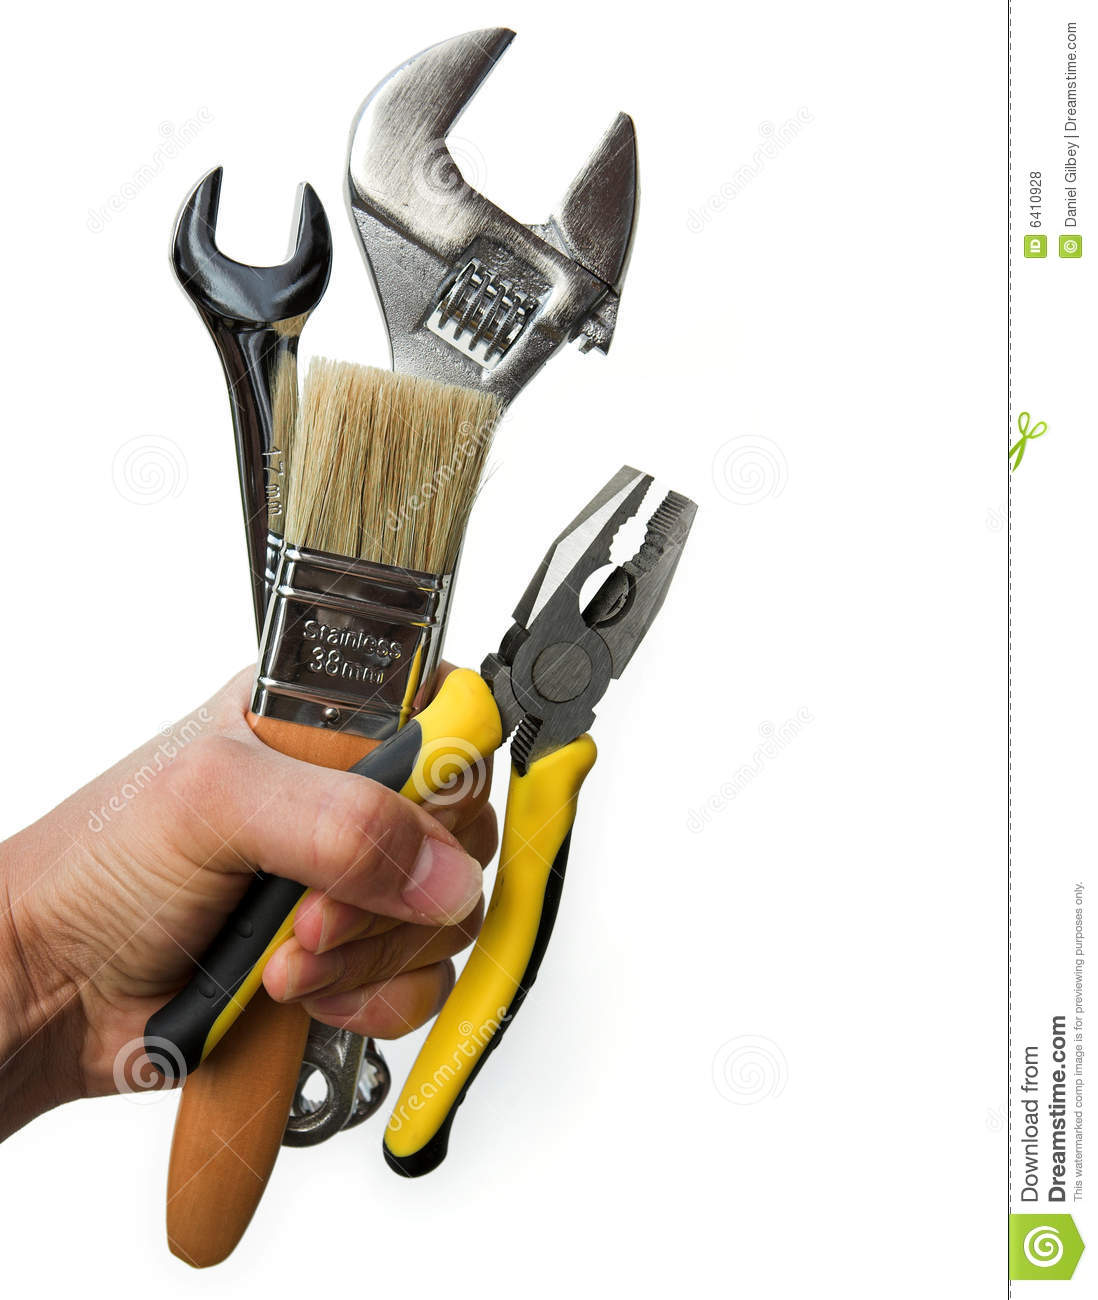 Hand holding a selection of tools